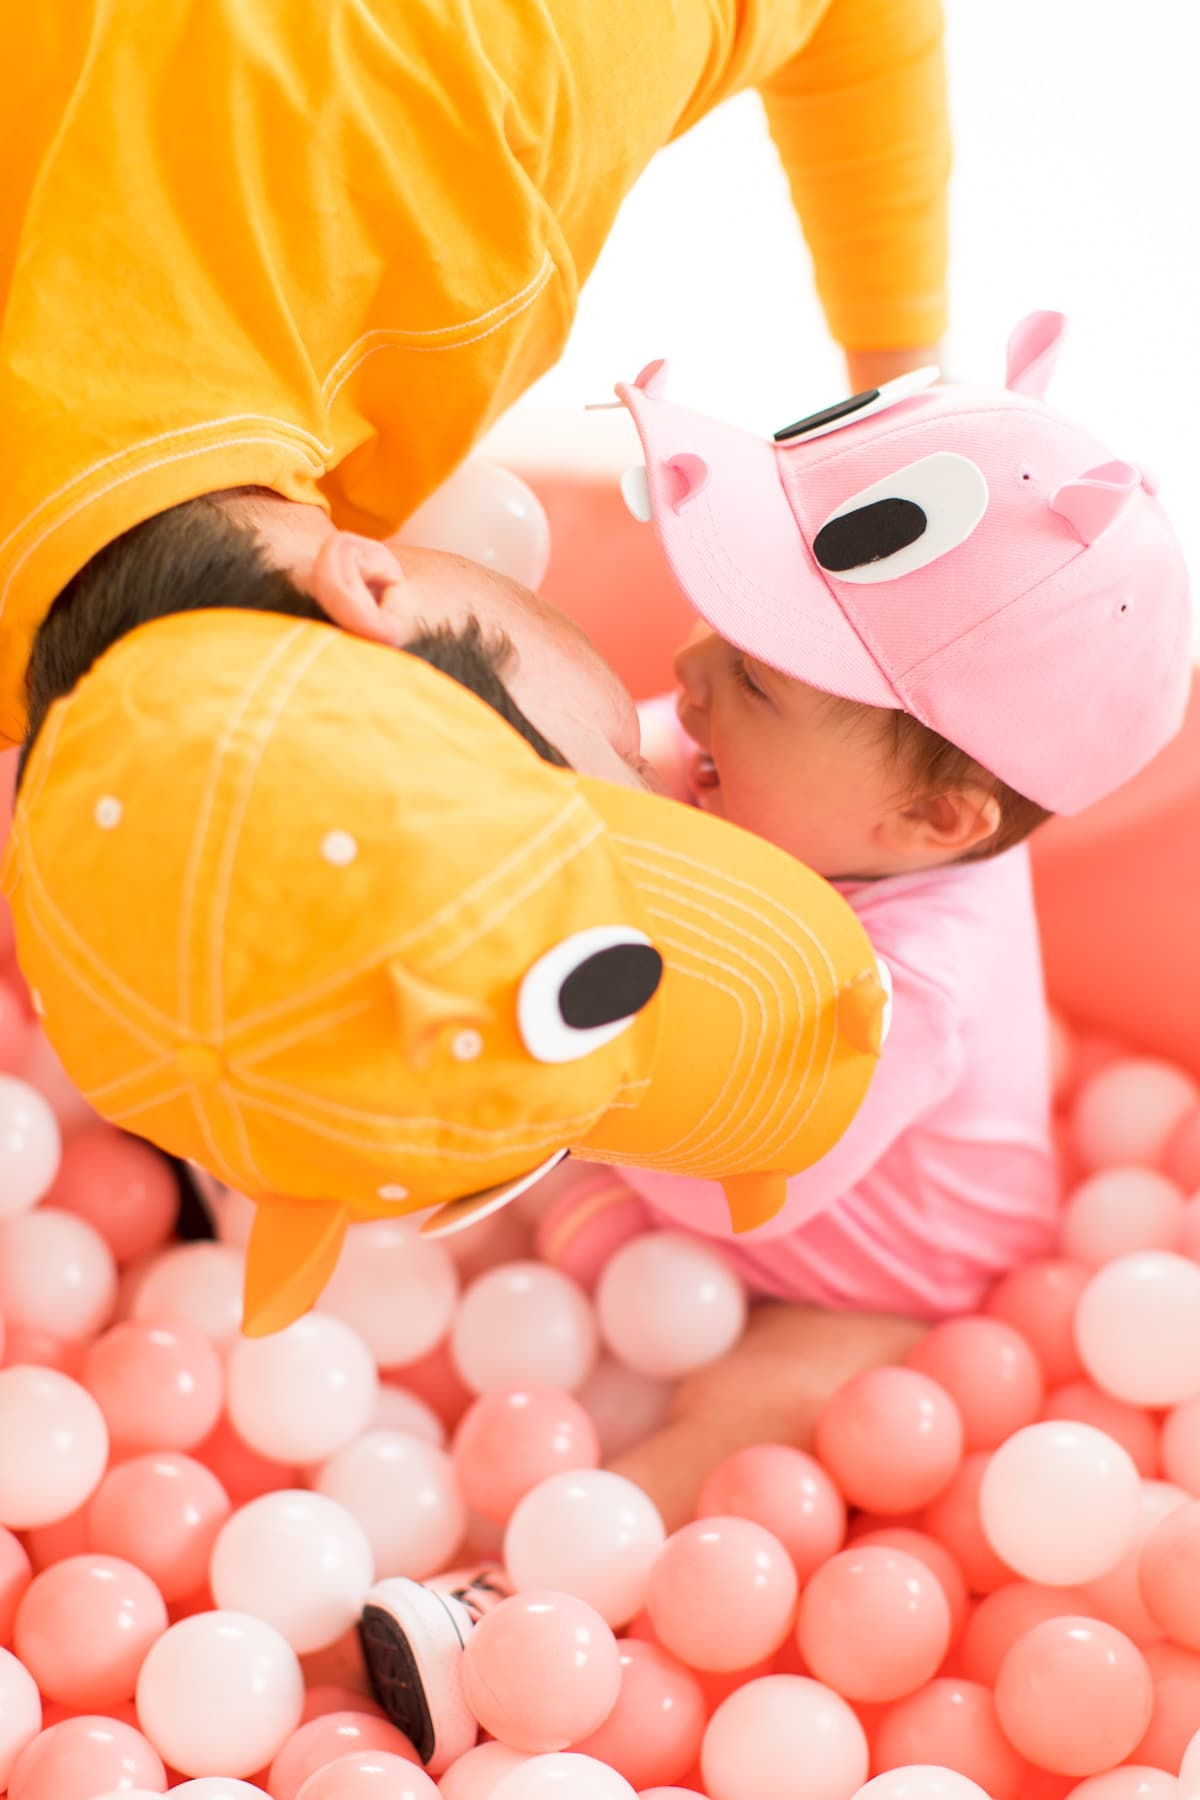 hippo kisses! -- loading up the crazy amount of baby gear! Our Family DIY Hungry Hippos Costume Idea -- by Top Houston blogger Ashley Rose of Sugar and Cloth -- #costumes #halloween #ideas #family #familycostume #diy